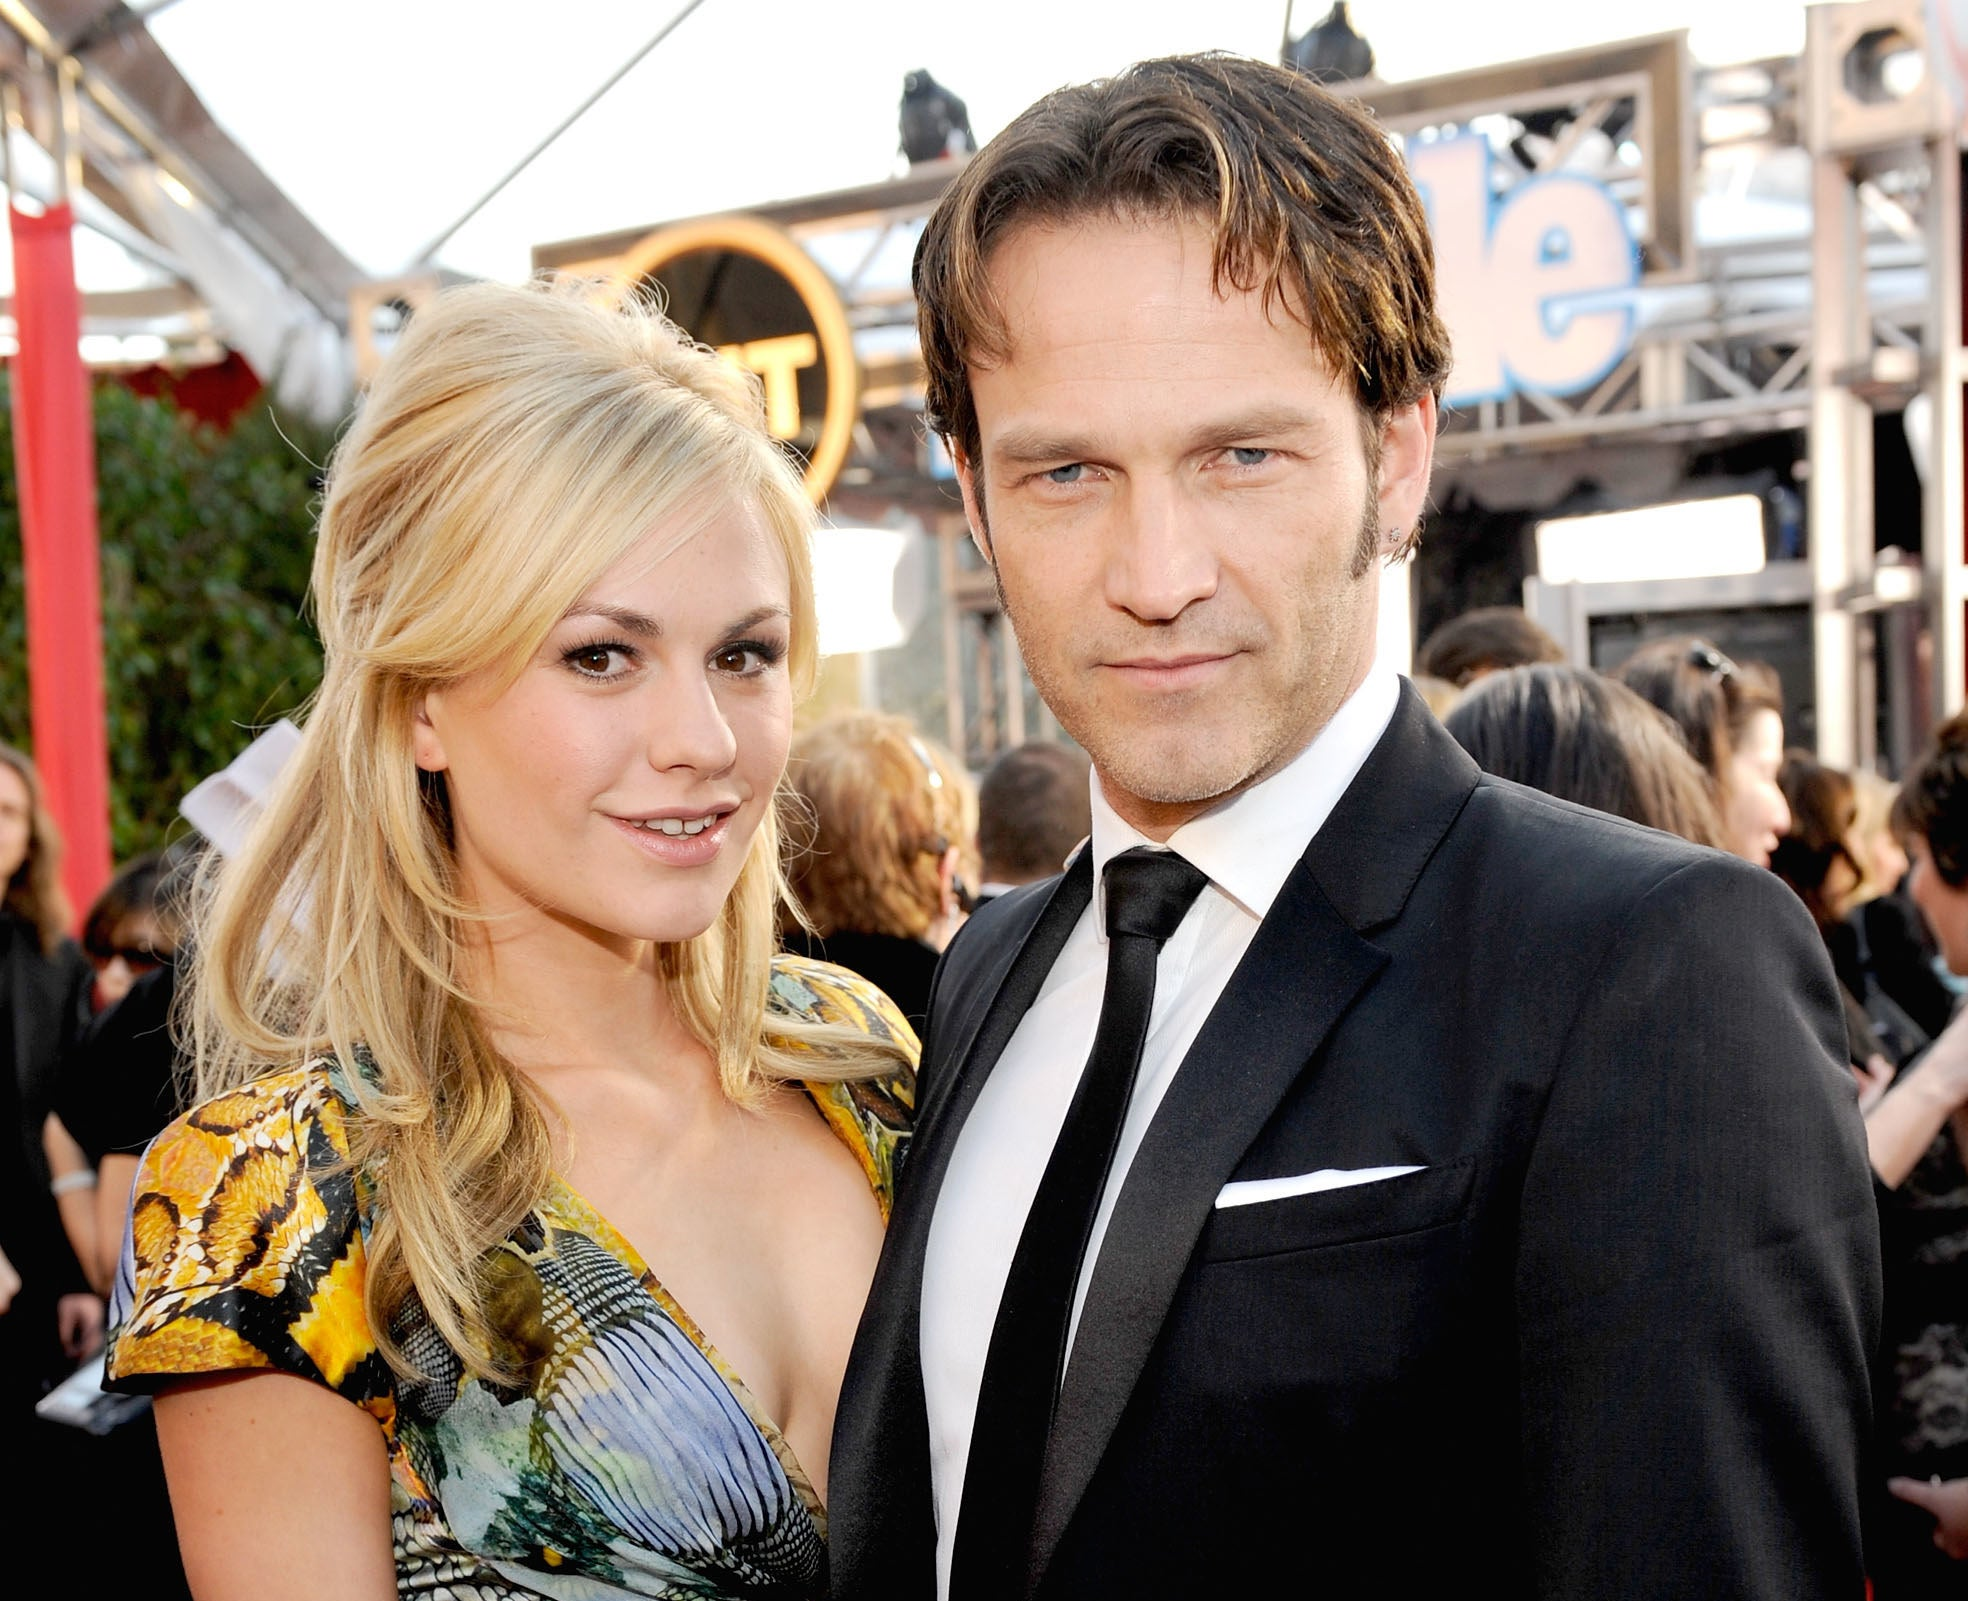 Anna Paquin and Stephen Moyer on the red carpet of the16th Annual Screen Actors Guild Awards at the Shrine Auditorium on January 23, 2010 .